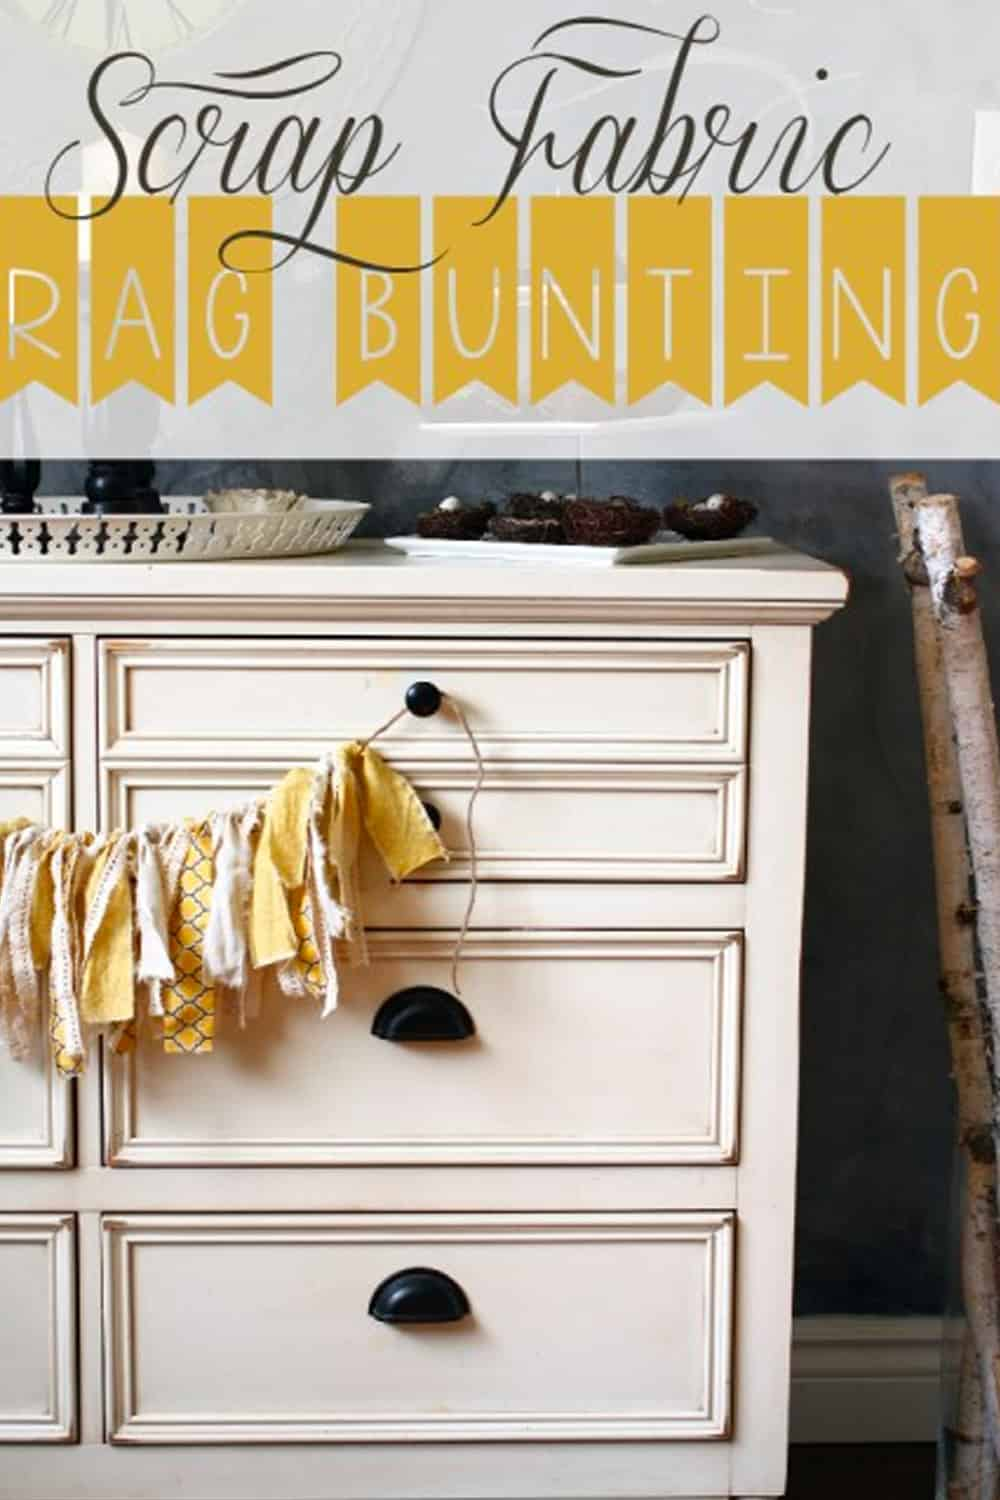 dresser with yellow and cream scrap fabric rag bunting hanging from it